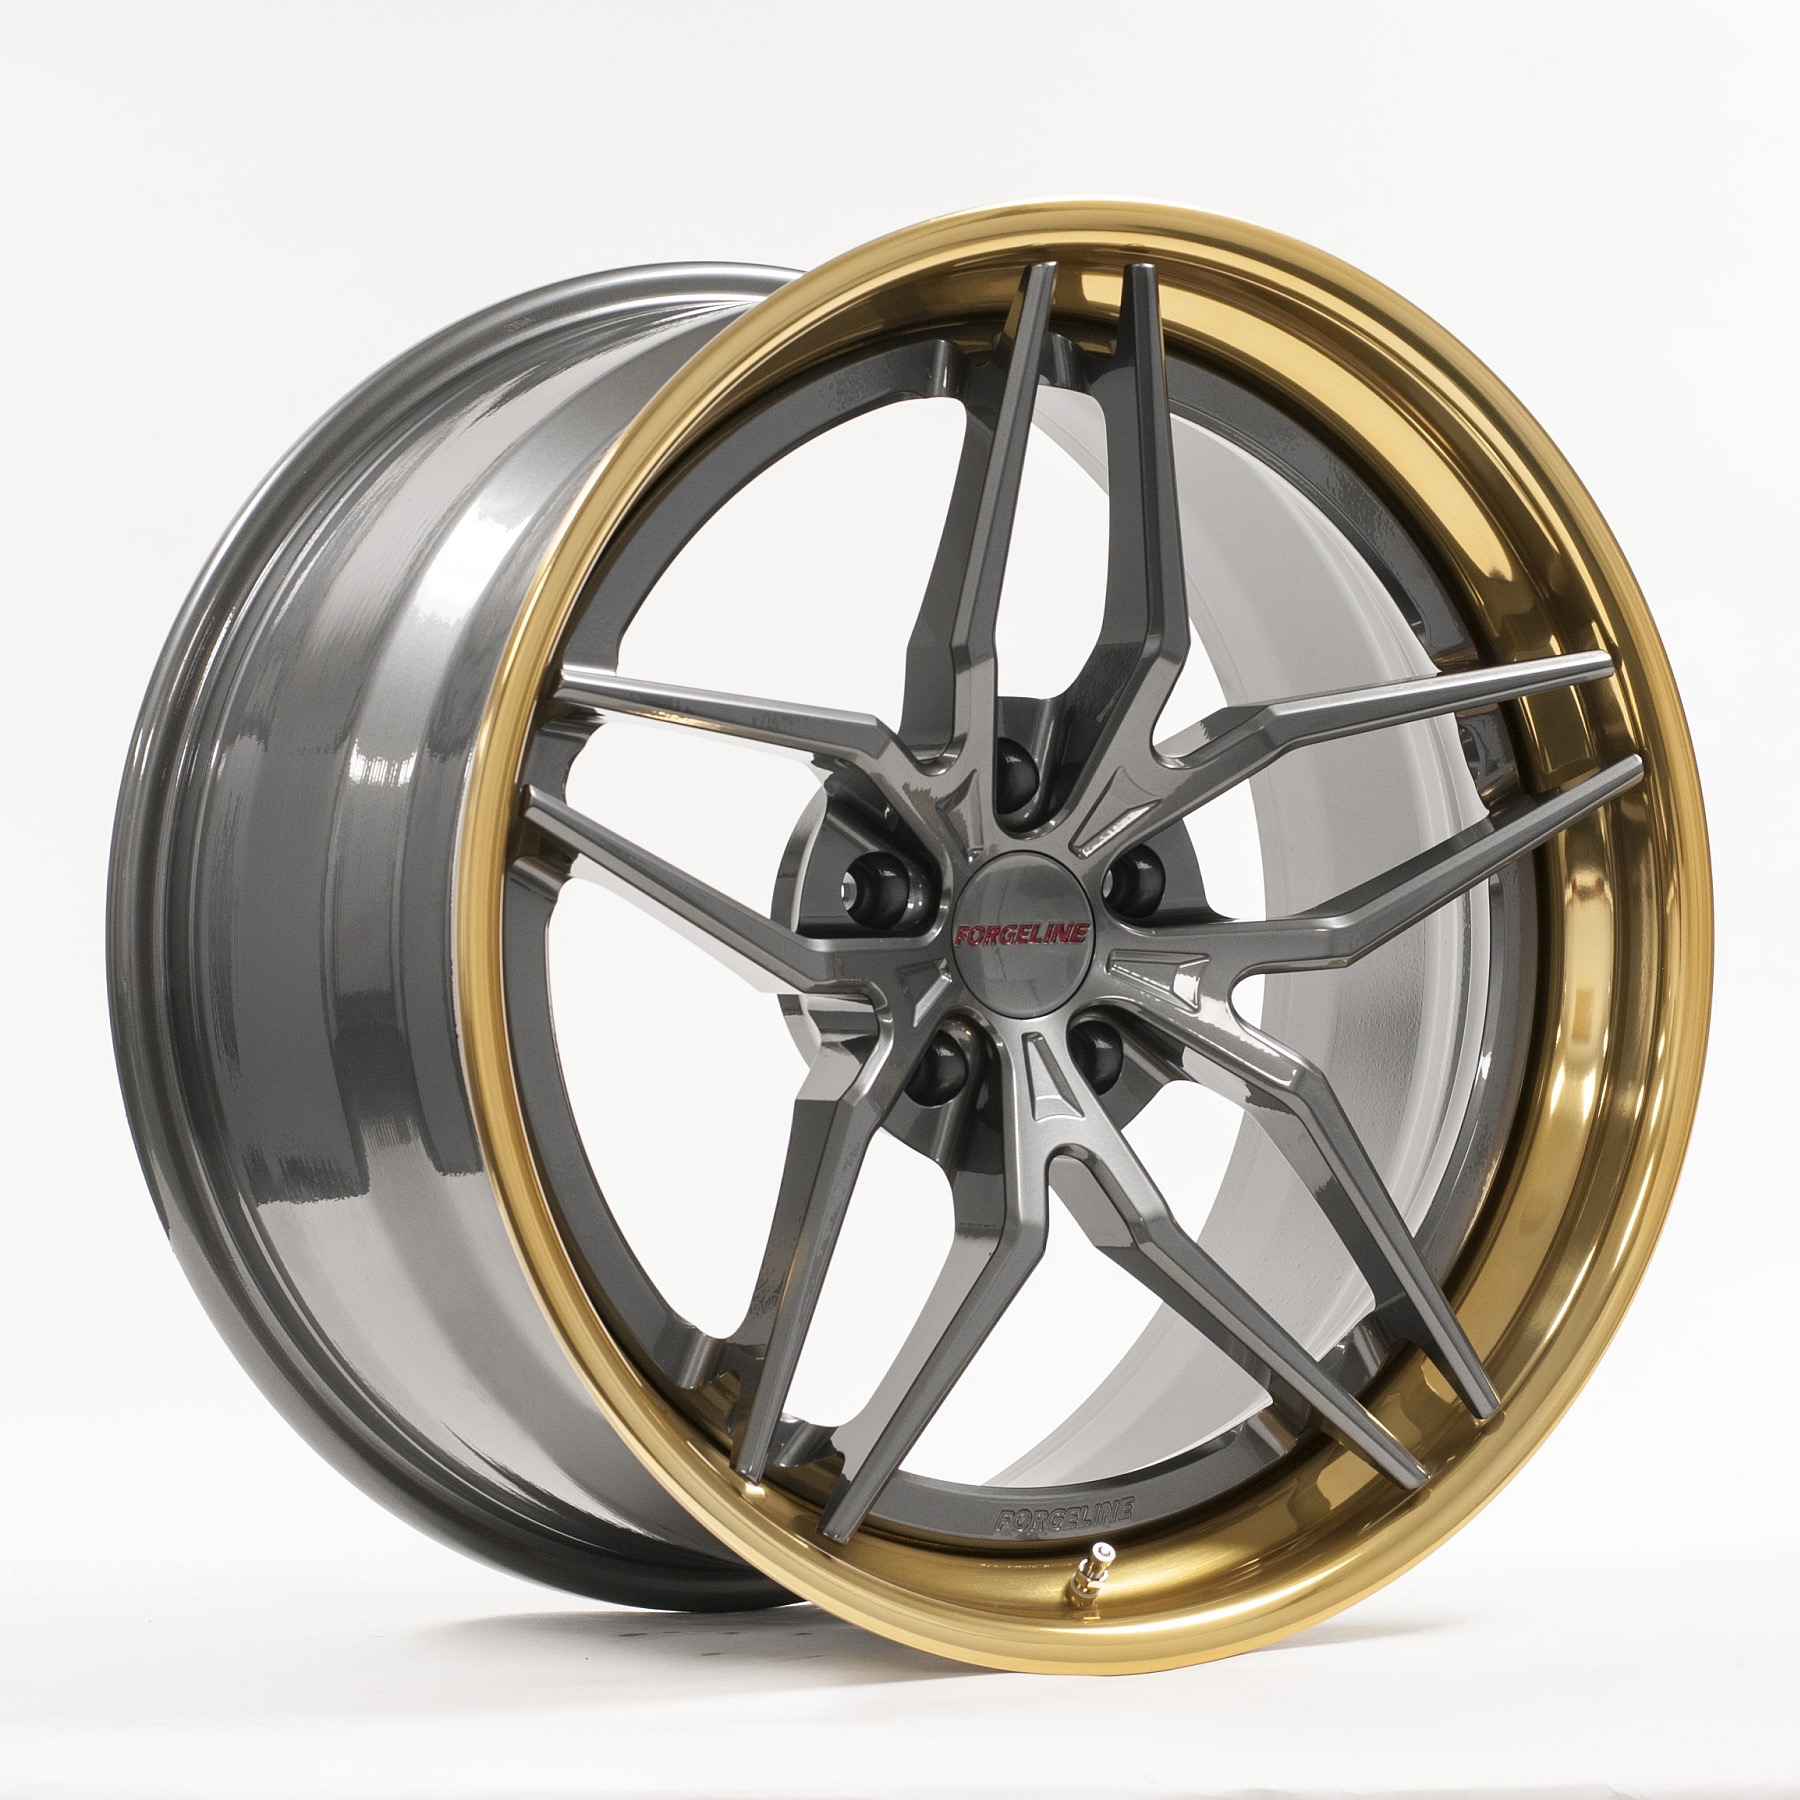 Forgeline, Forgeline features colorful finishes for new wheels, ClassicCars.com Journal